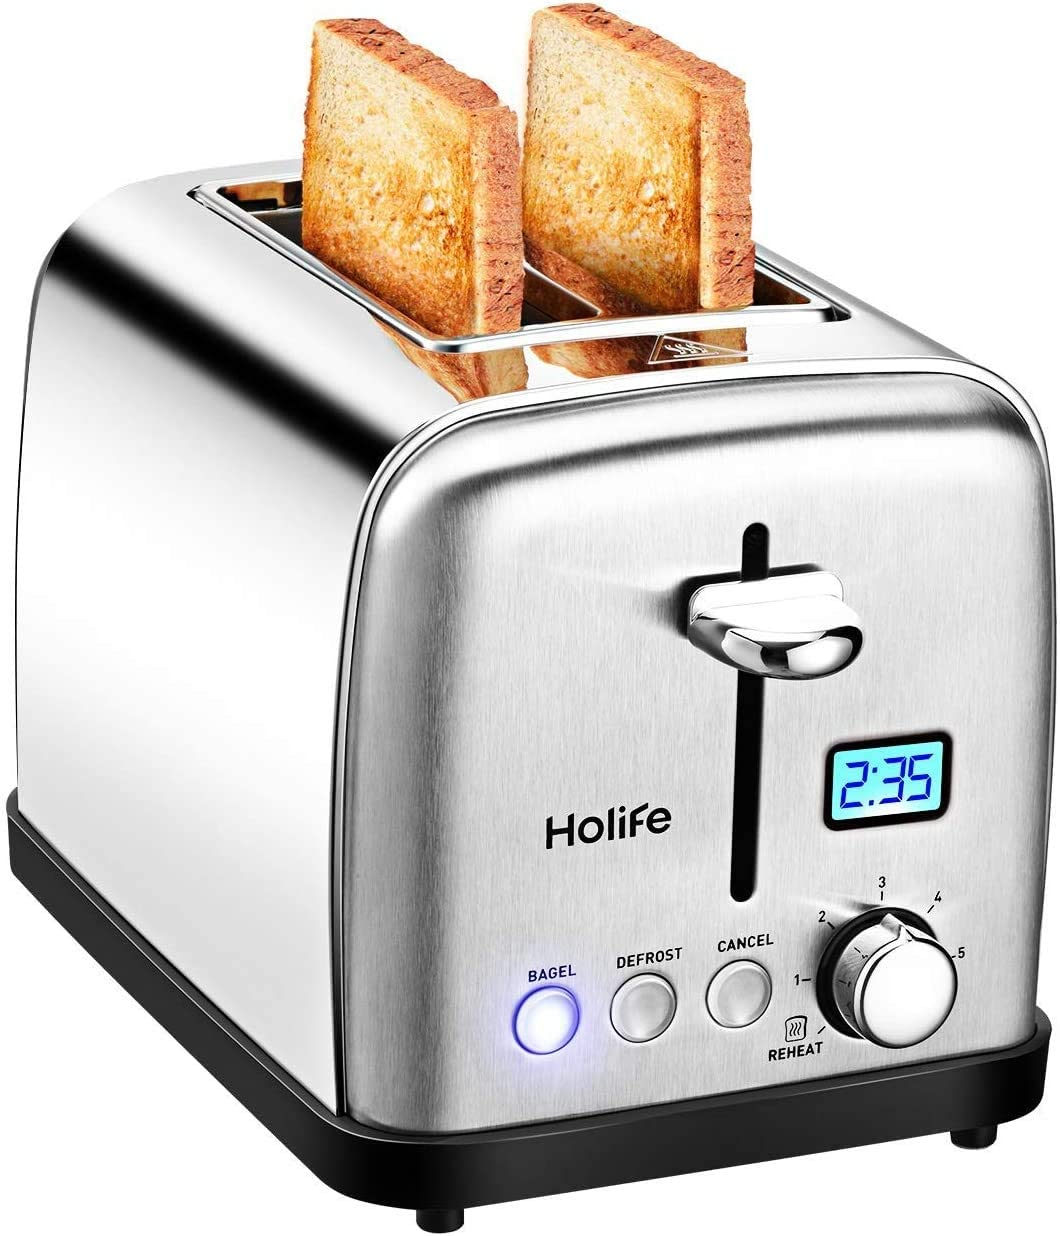 """Holife Toaster 2 Slice, Stainless Steel Toaster, Bagel Toaster with Digital Display, 6 Shade Settings, Bagel/Defrost/Cancel/Reheat Function, 1.5""""Extra Wide Slot, 900W"""